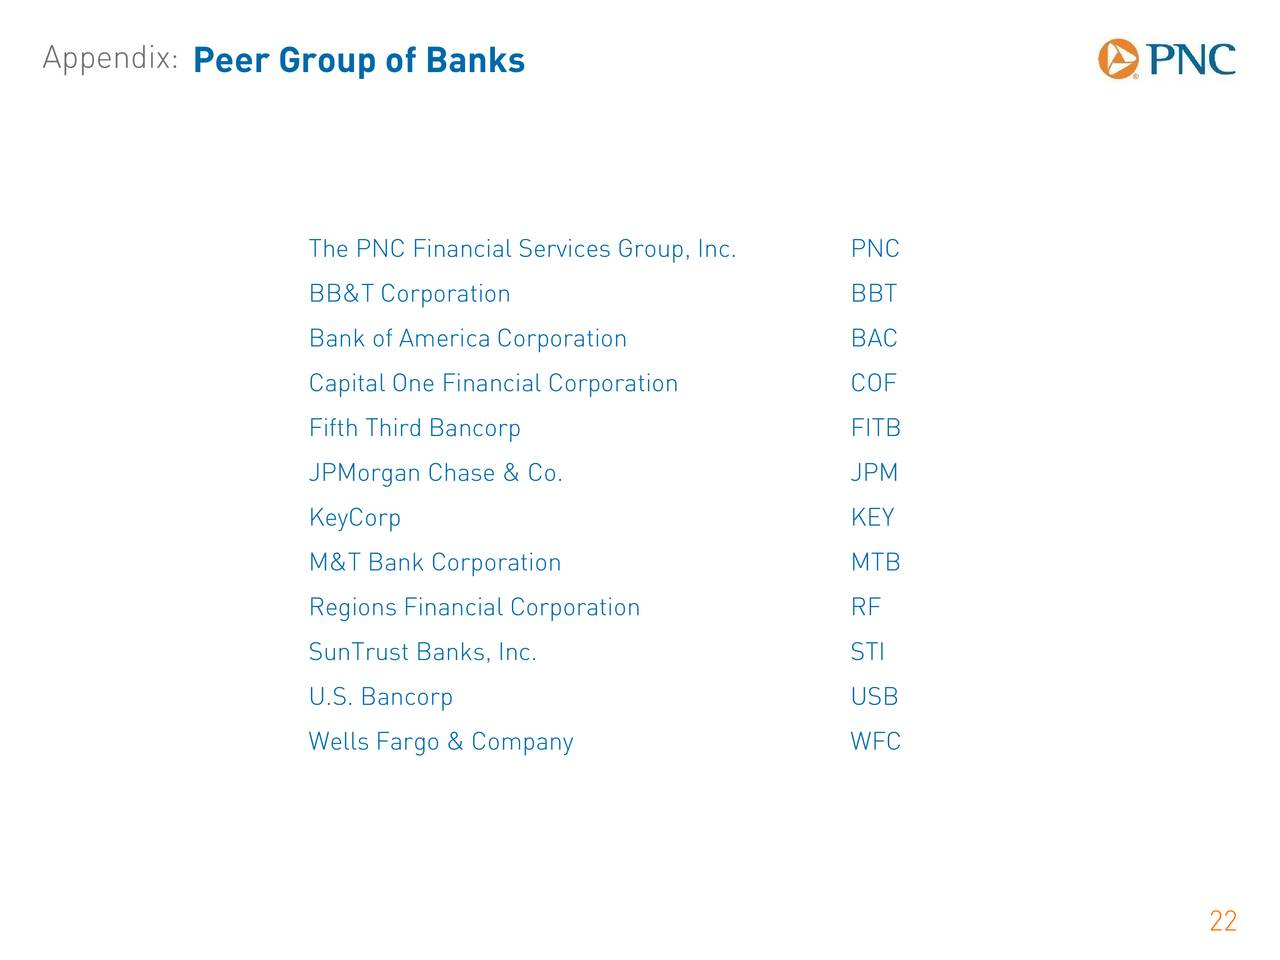 an analysis of the business strategy of pnc financial service group Find company research, competitor information, contact details & financial data for the pnc financial services group inc get the latest business insights from.